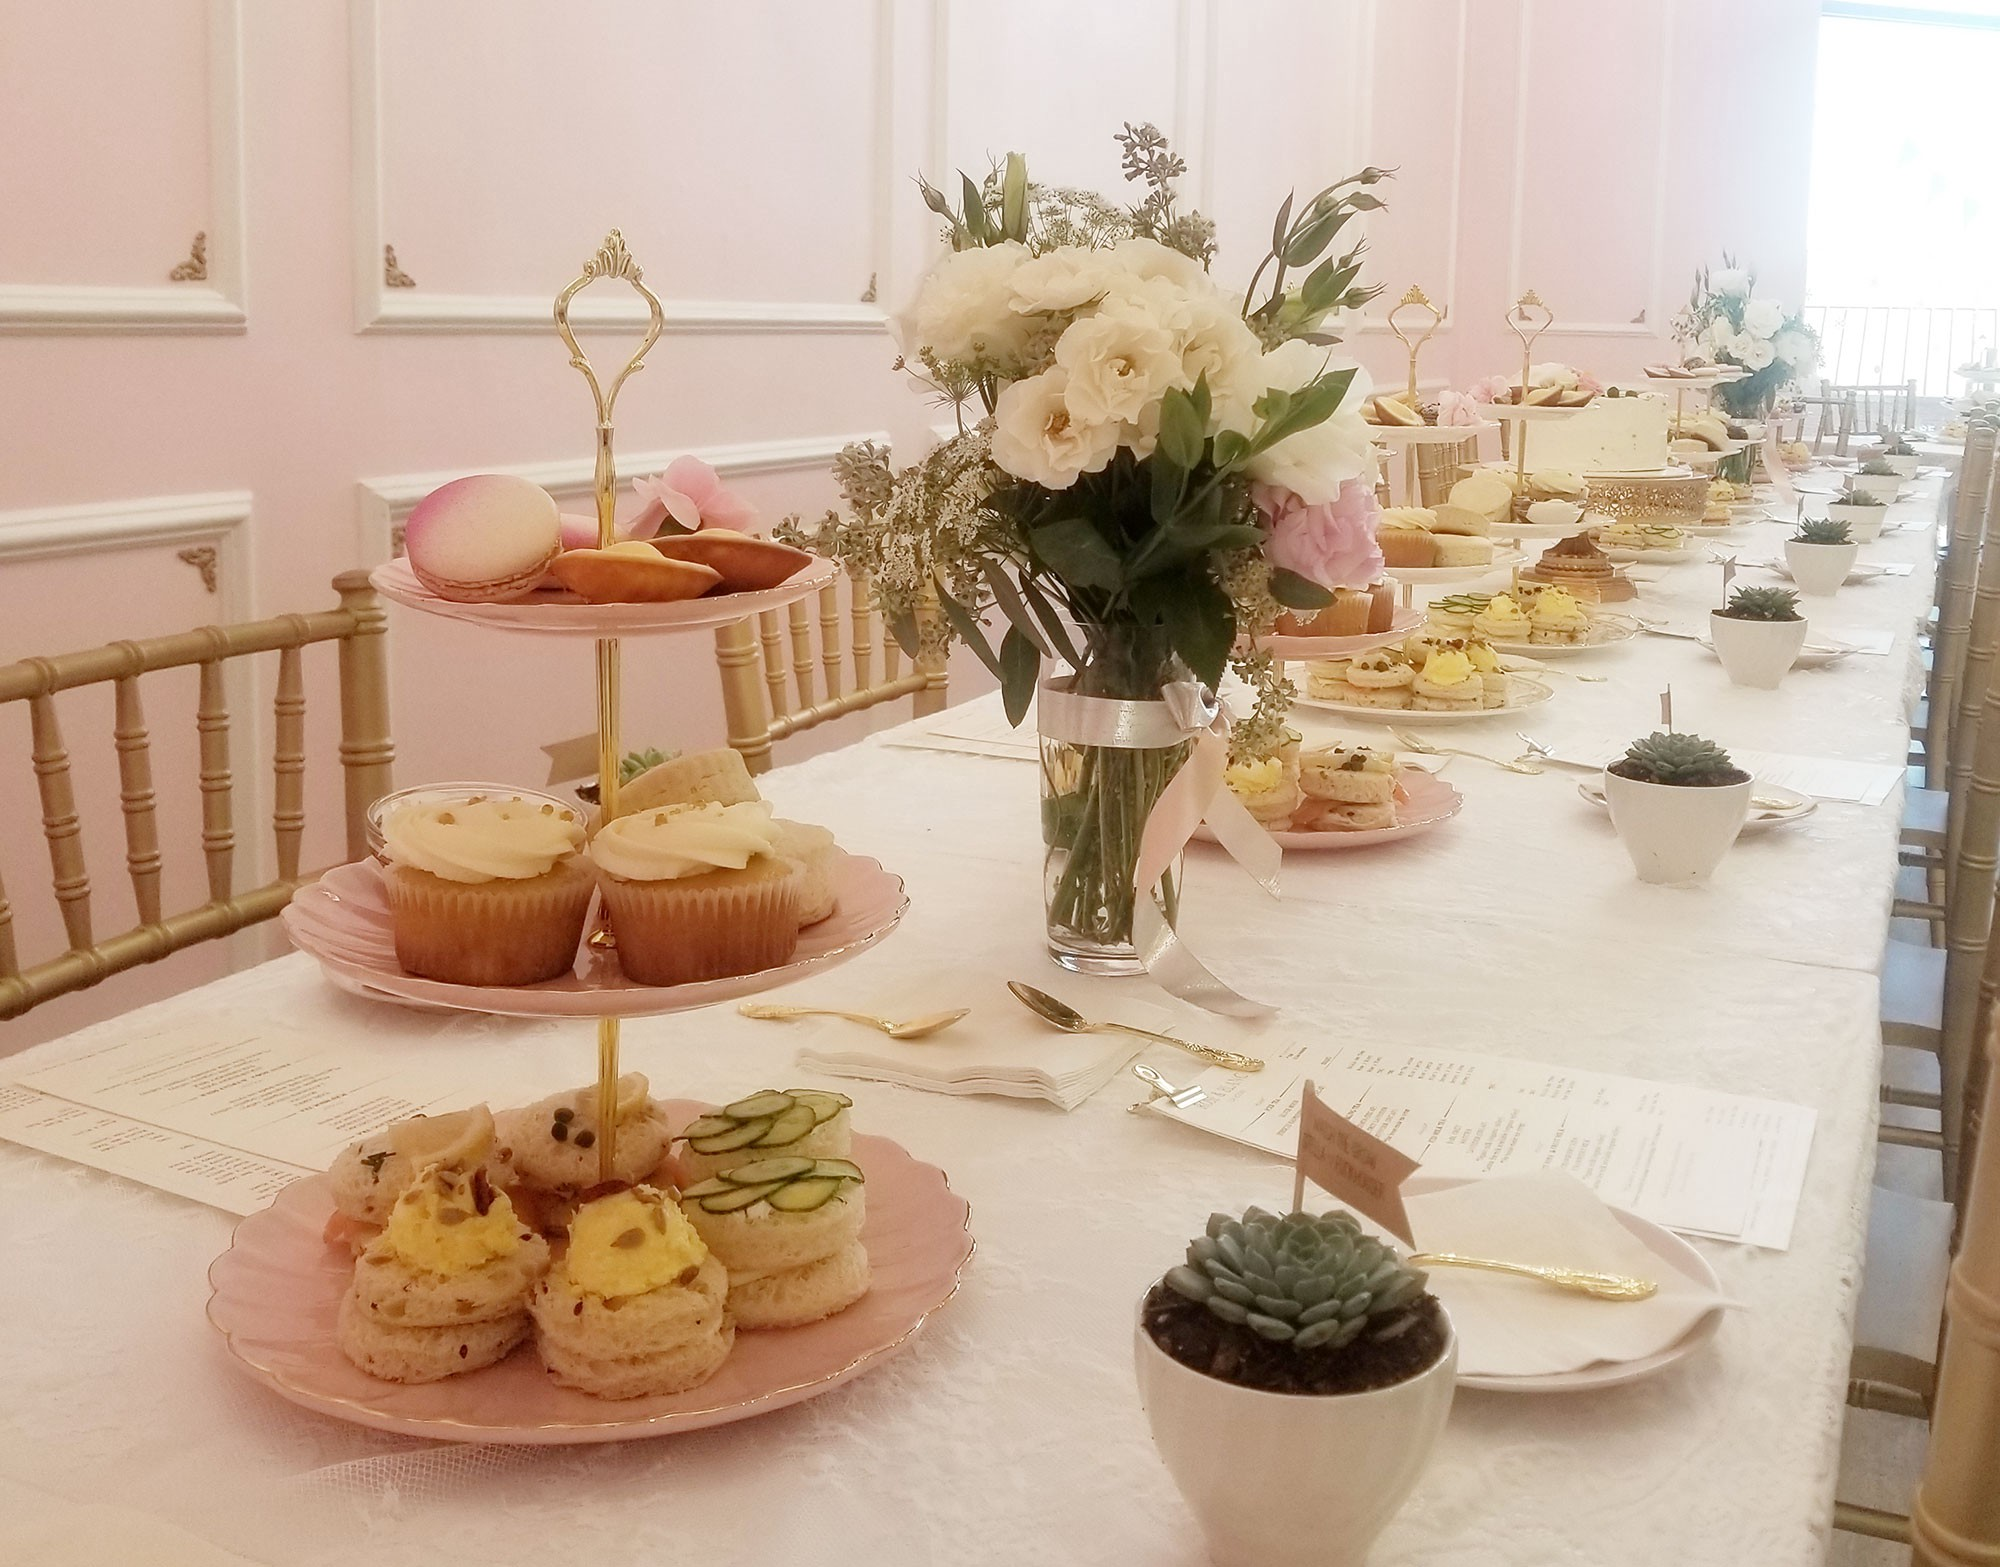 Baby Shower Venue In Los Angeles Rose And Blanc Tea Room Medium